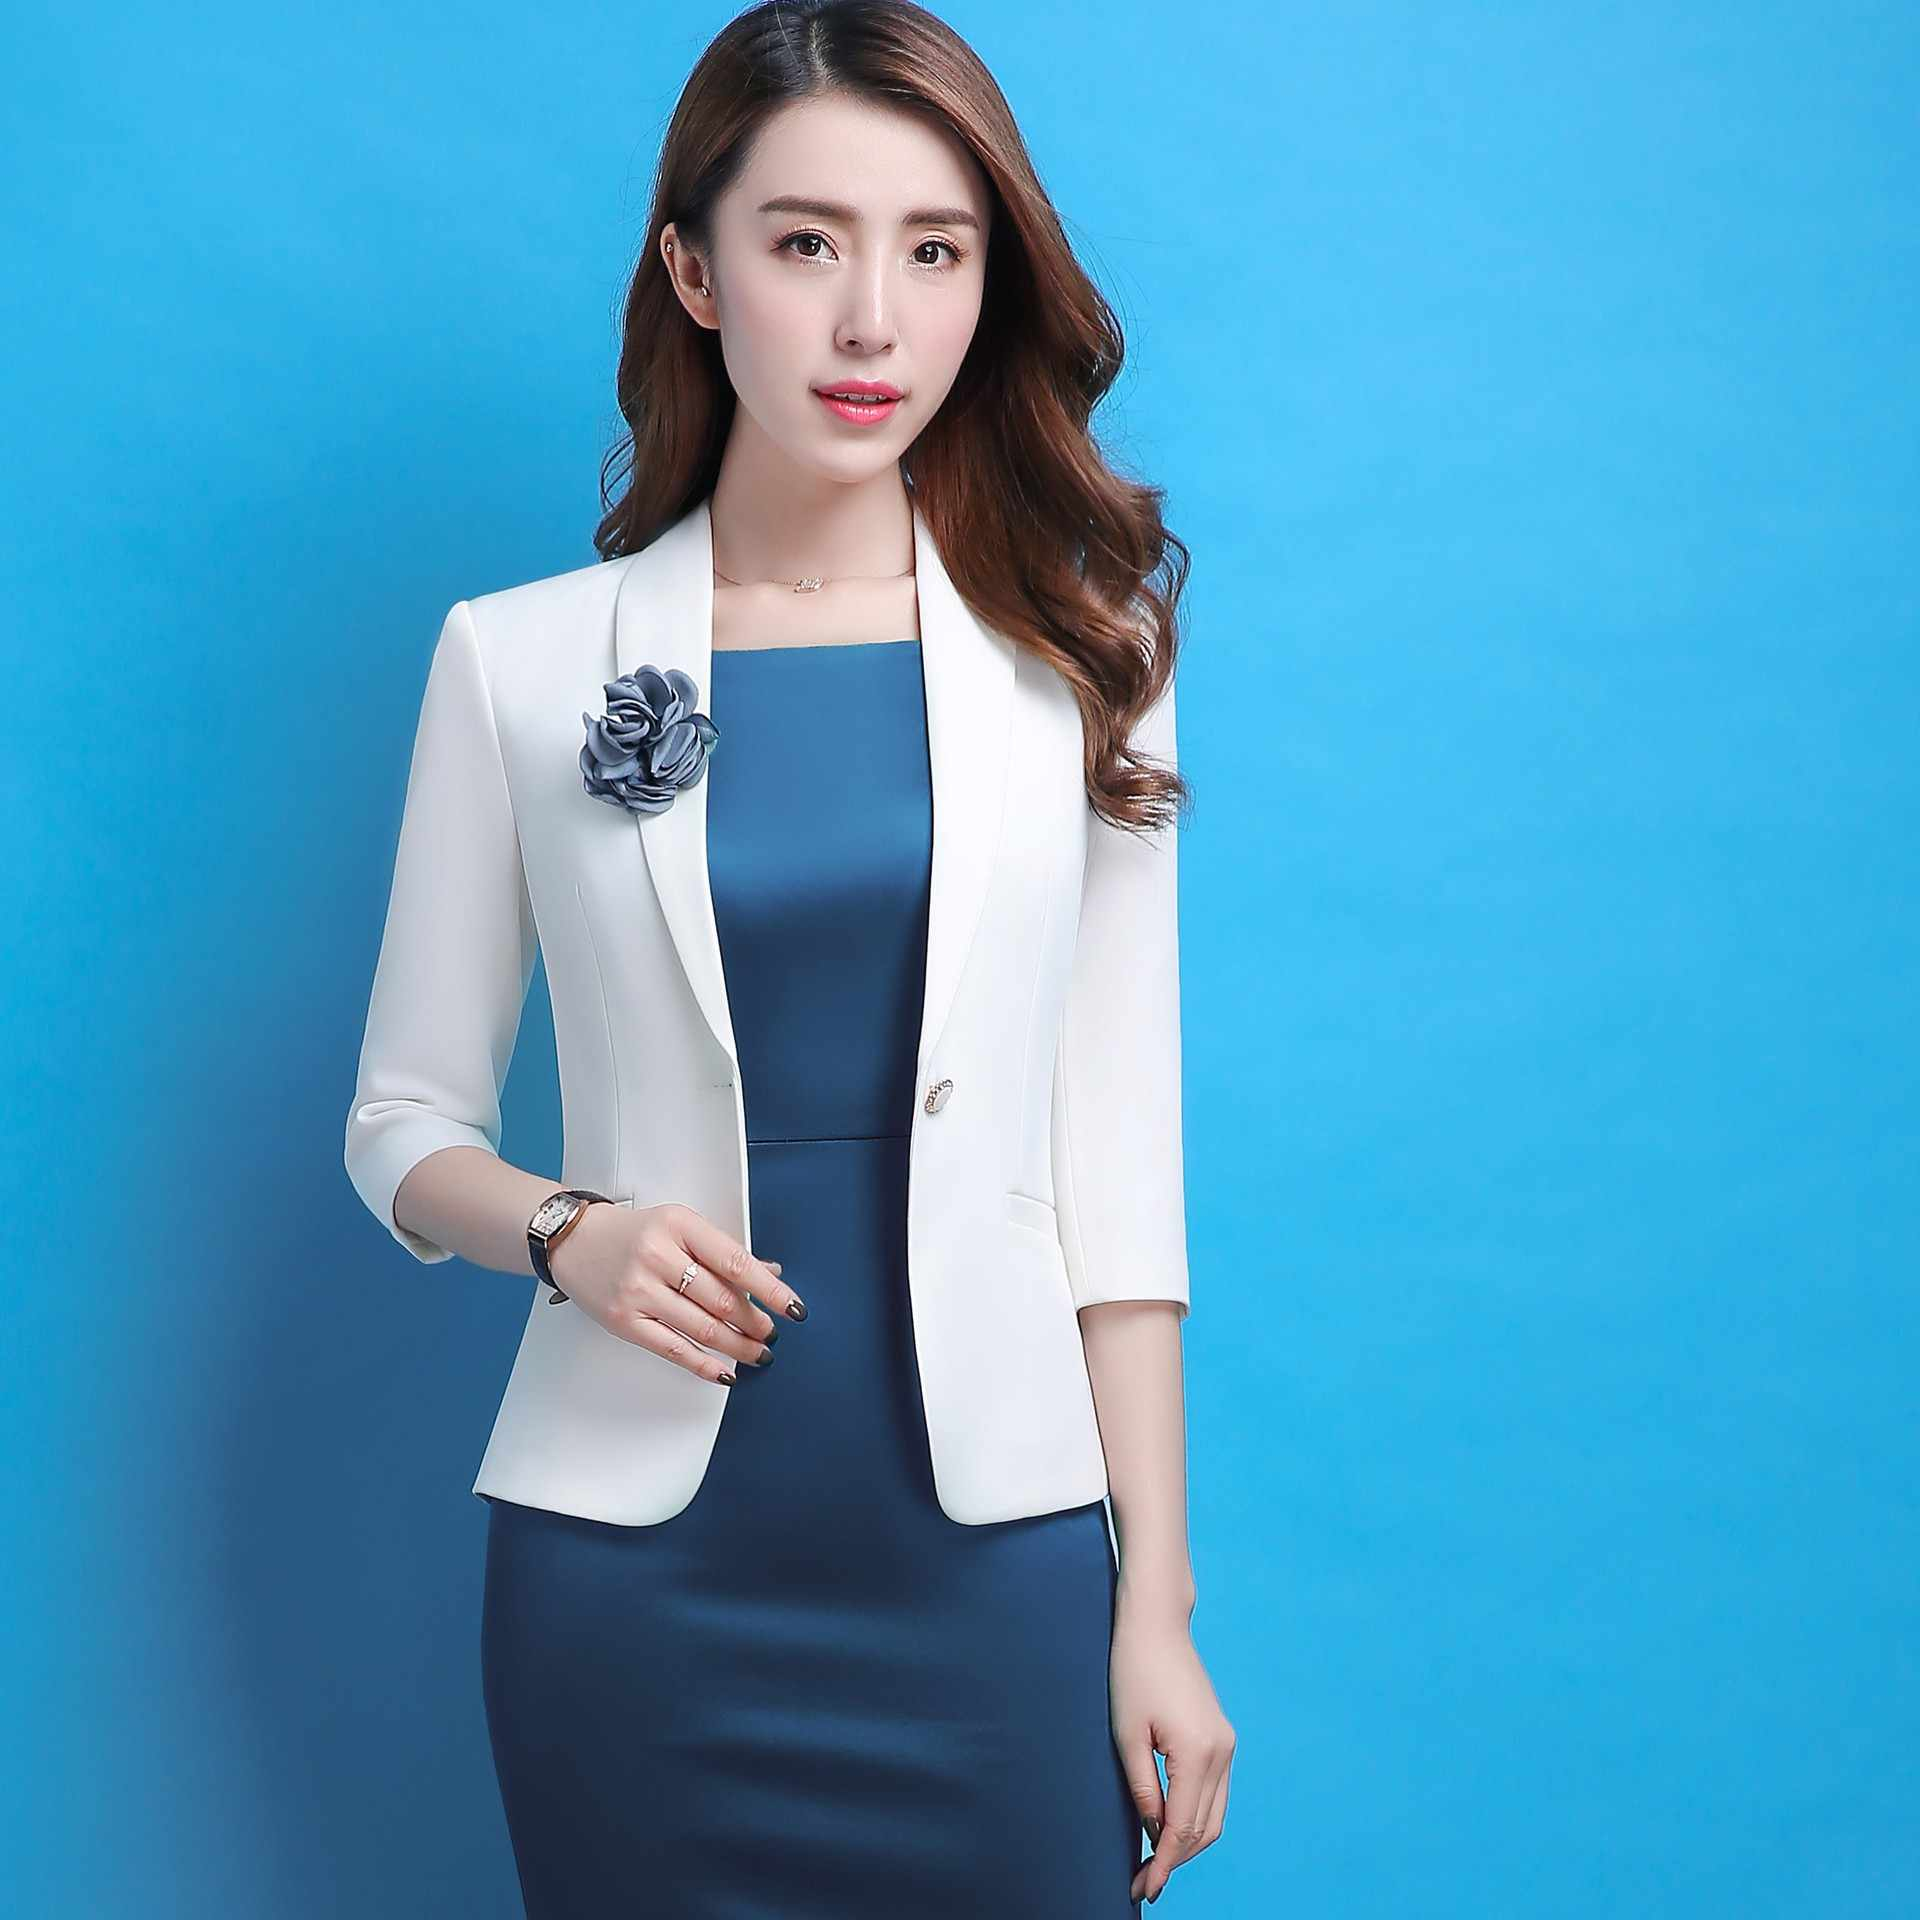 abe971479c0 Formal Professional Business Work Wear Blazers Suits With Jackets Coat And Dress  Slim Fashion Female Office